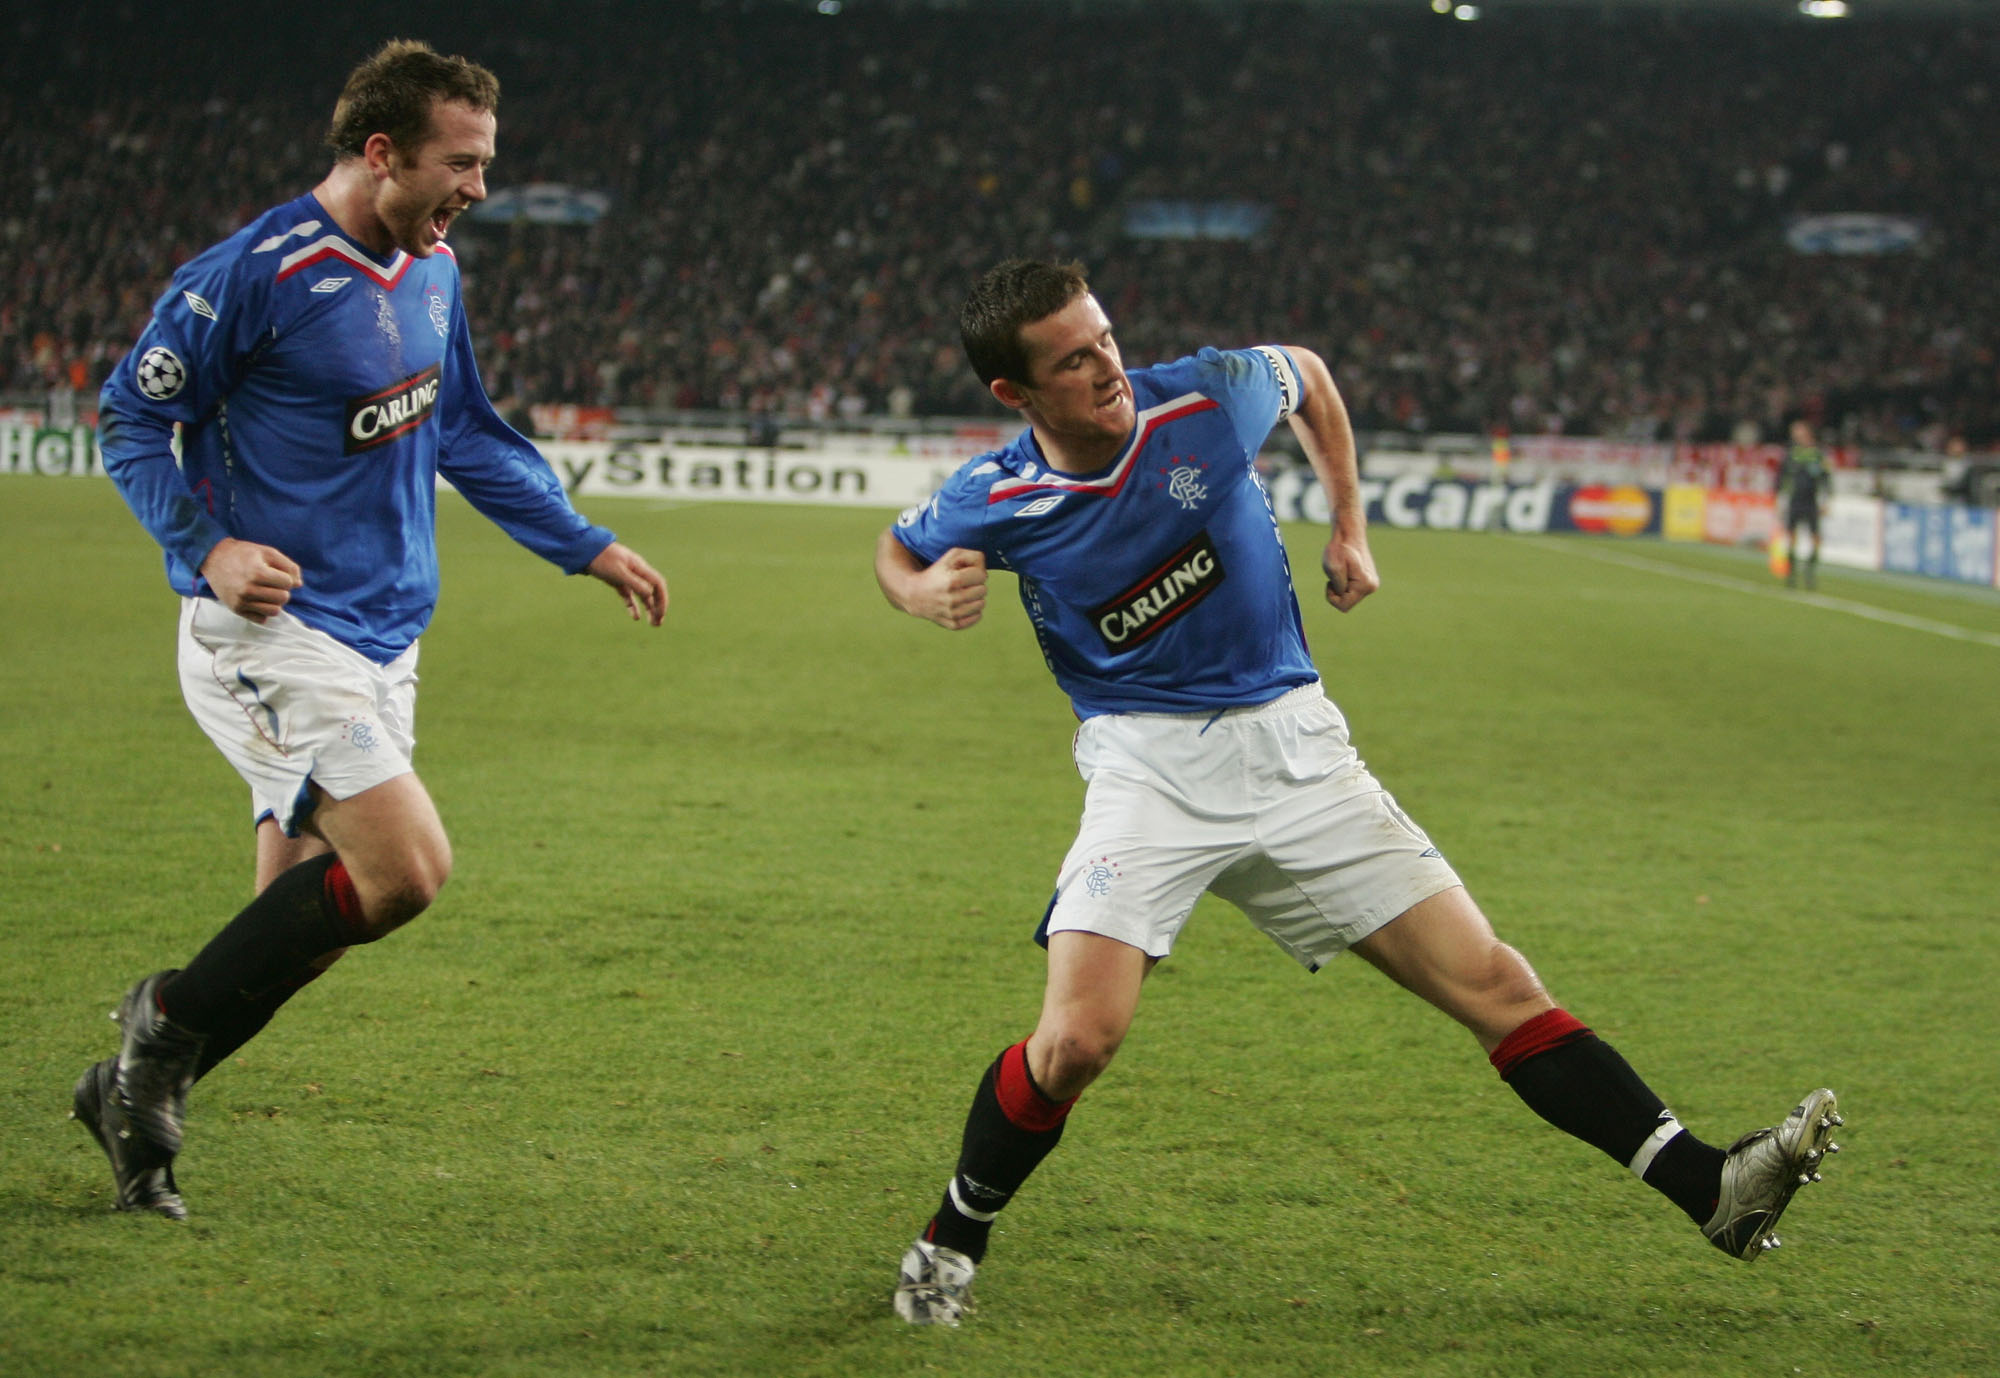 Champions League Review Vfb Stuttgart 3 2 Rangers A Rangers Lose But Should Still Qualify Who Ate All The Pies